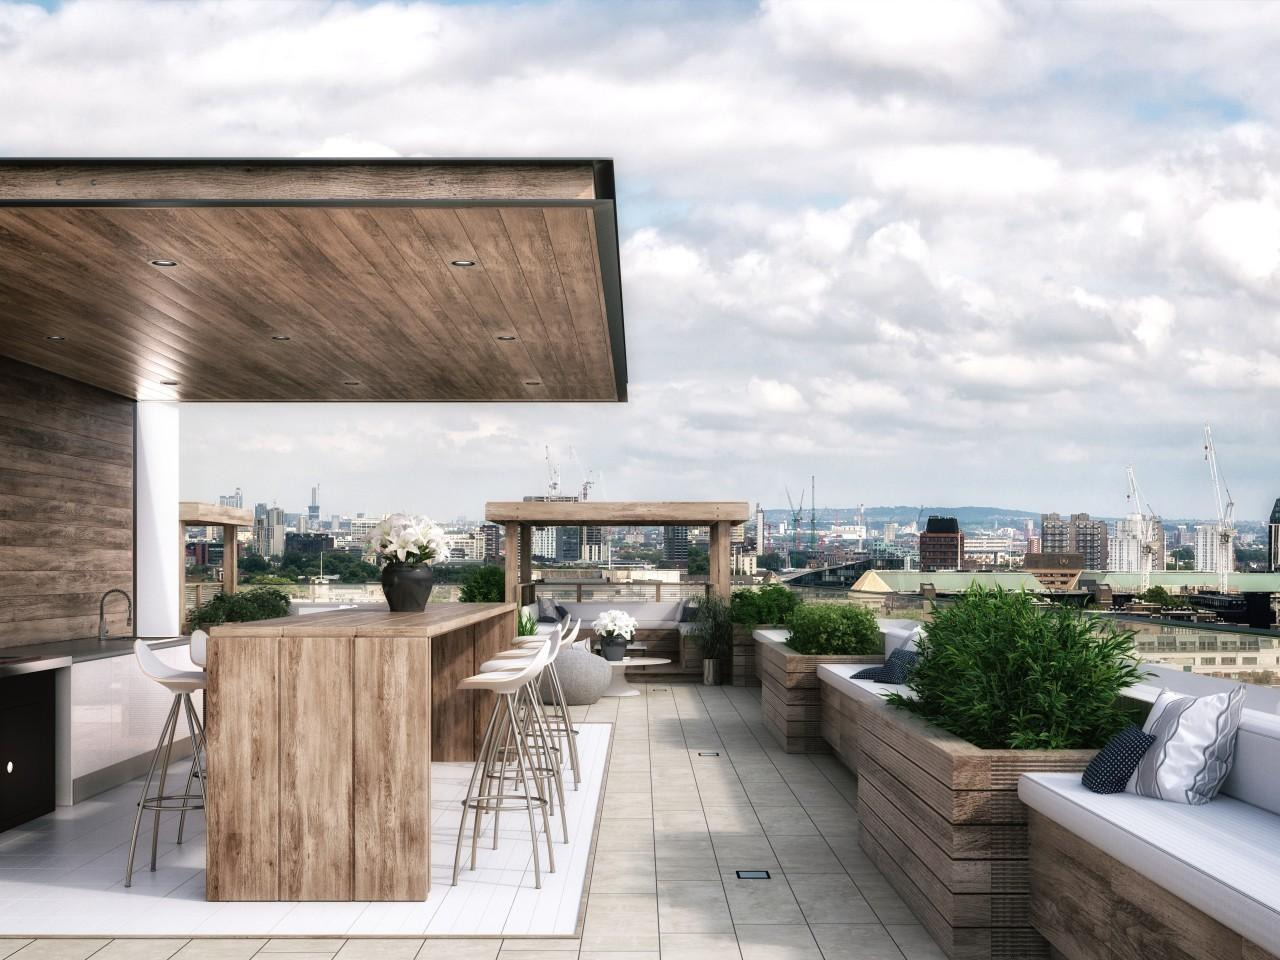 Flats Roof Gardens London Inspired Homes